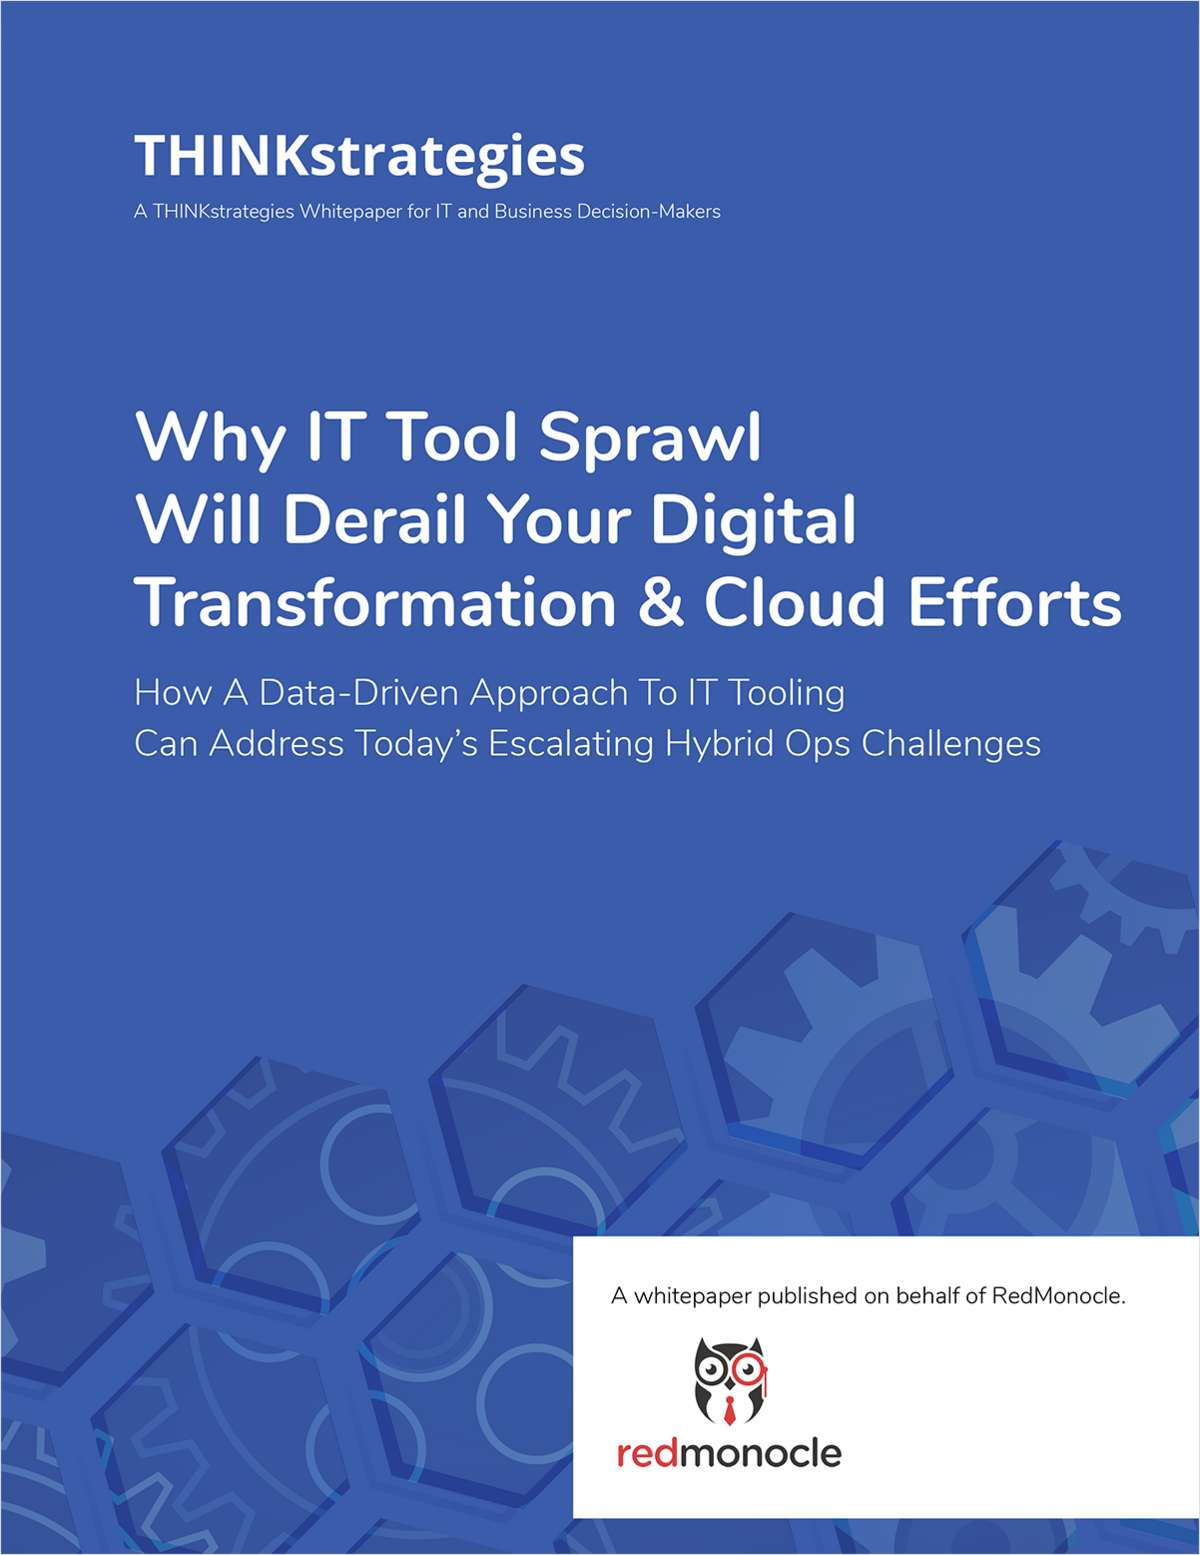 Why IT Tool Sprawl Will Derail Your Digital Transformation & Cloud Efforts